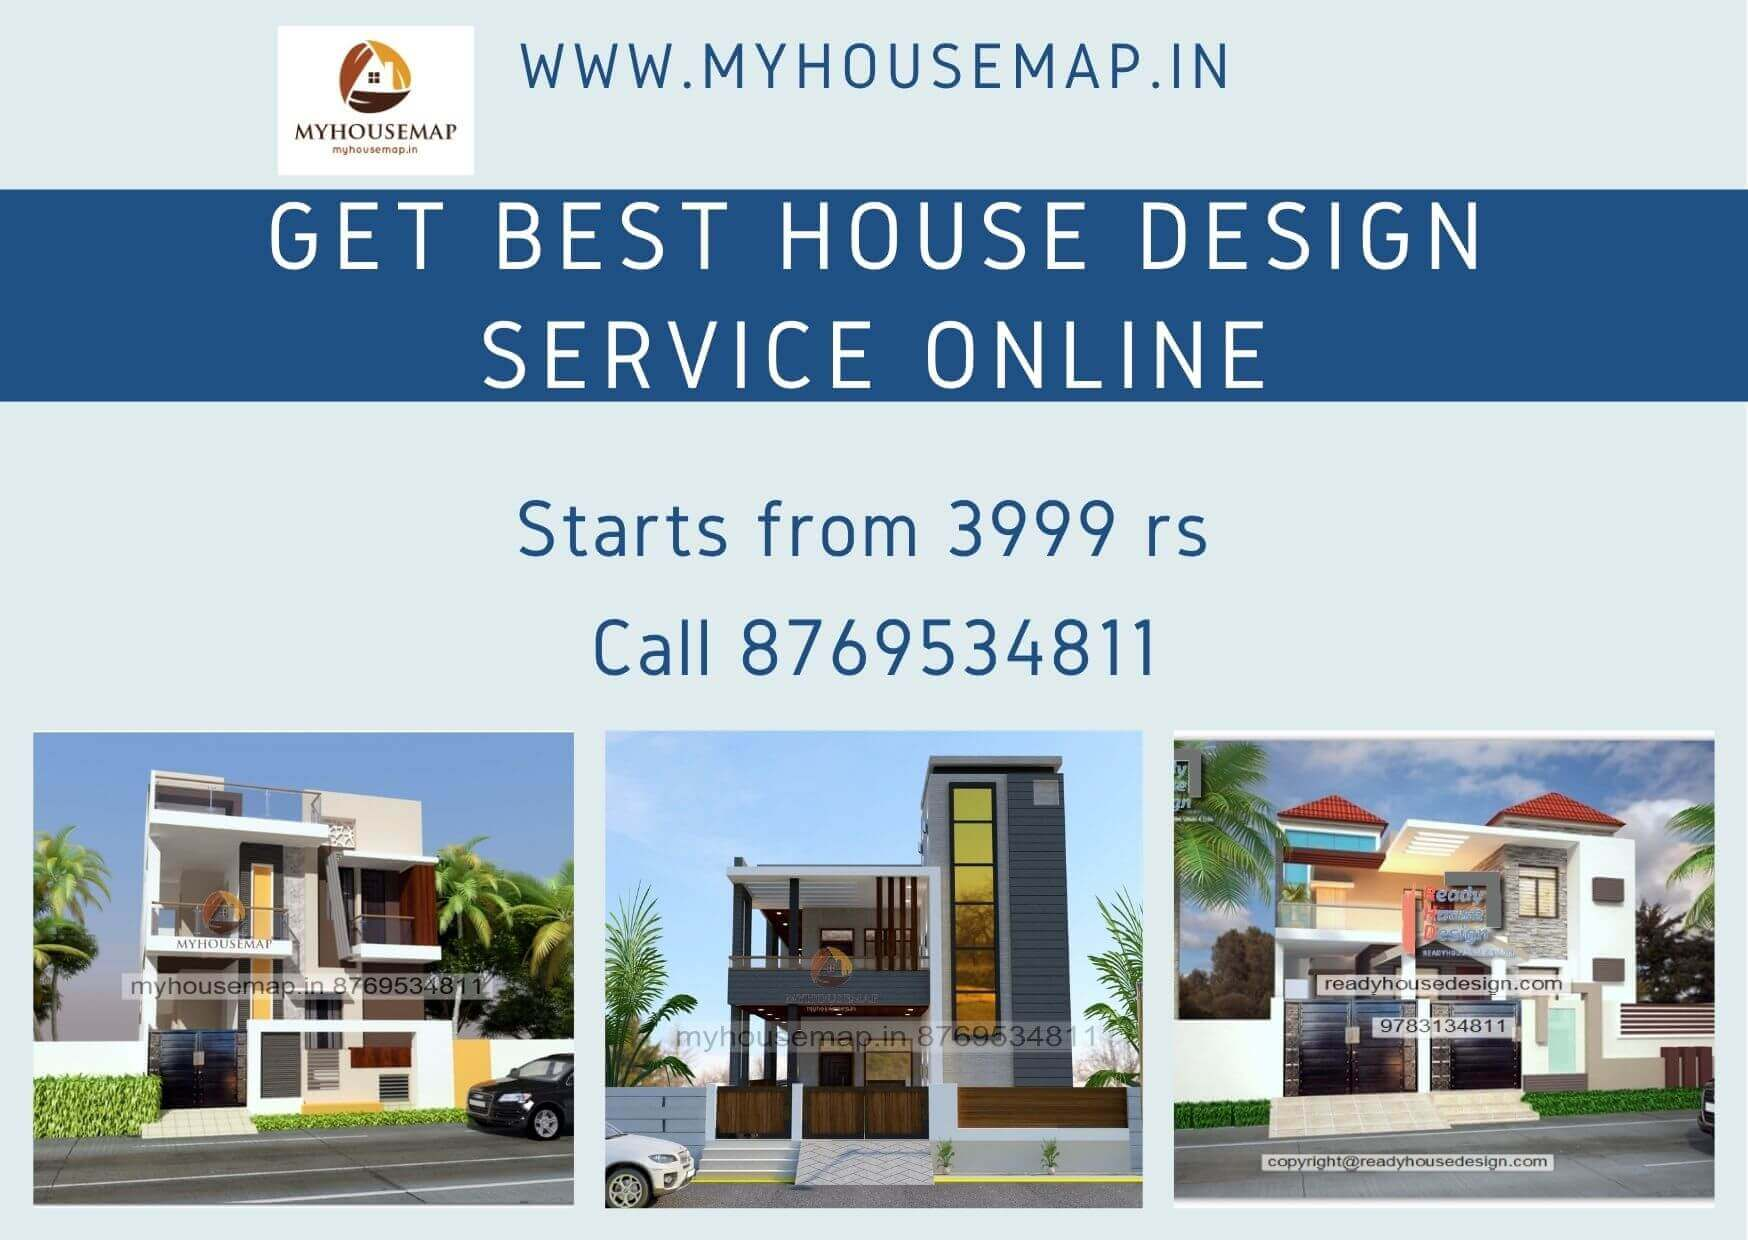 my house map ad